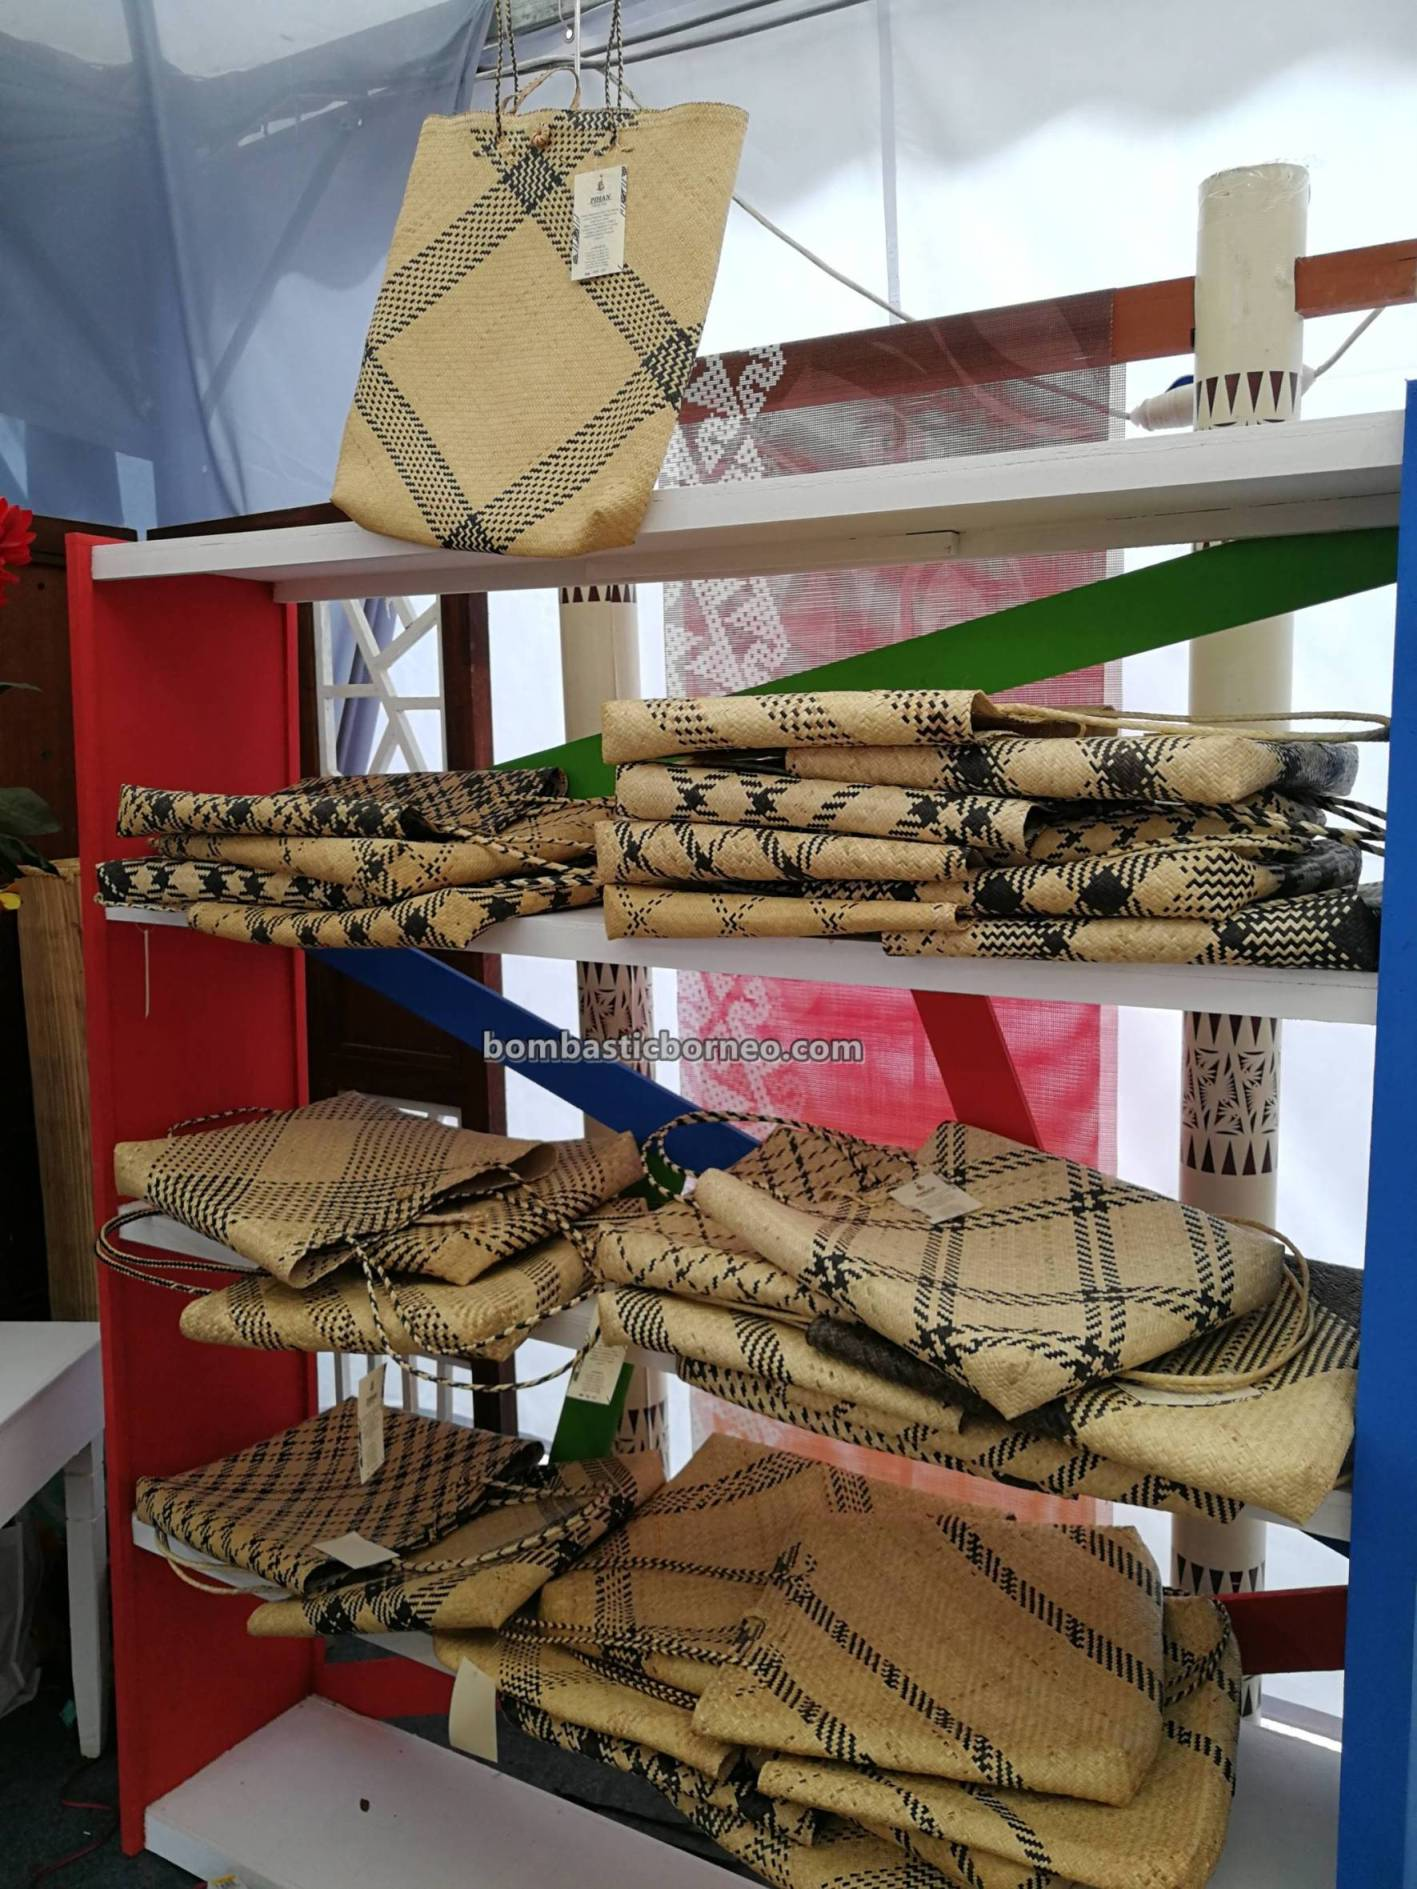 rotan, rattan products, traditional, Sarawak craft festival, handicrafts exhibition, event, native, dayak, Kraftangan Malaysia, Borneo, Tourism, tourist attraction, travel guide, Kuching Waterfront